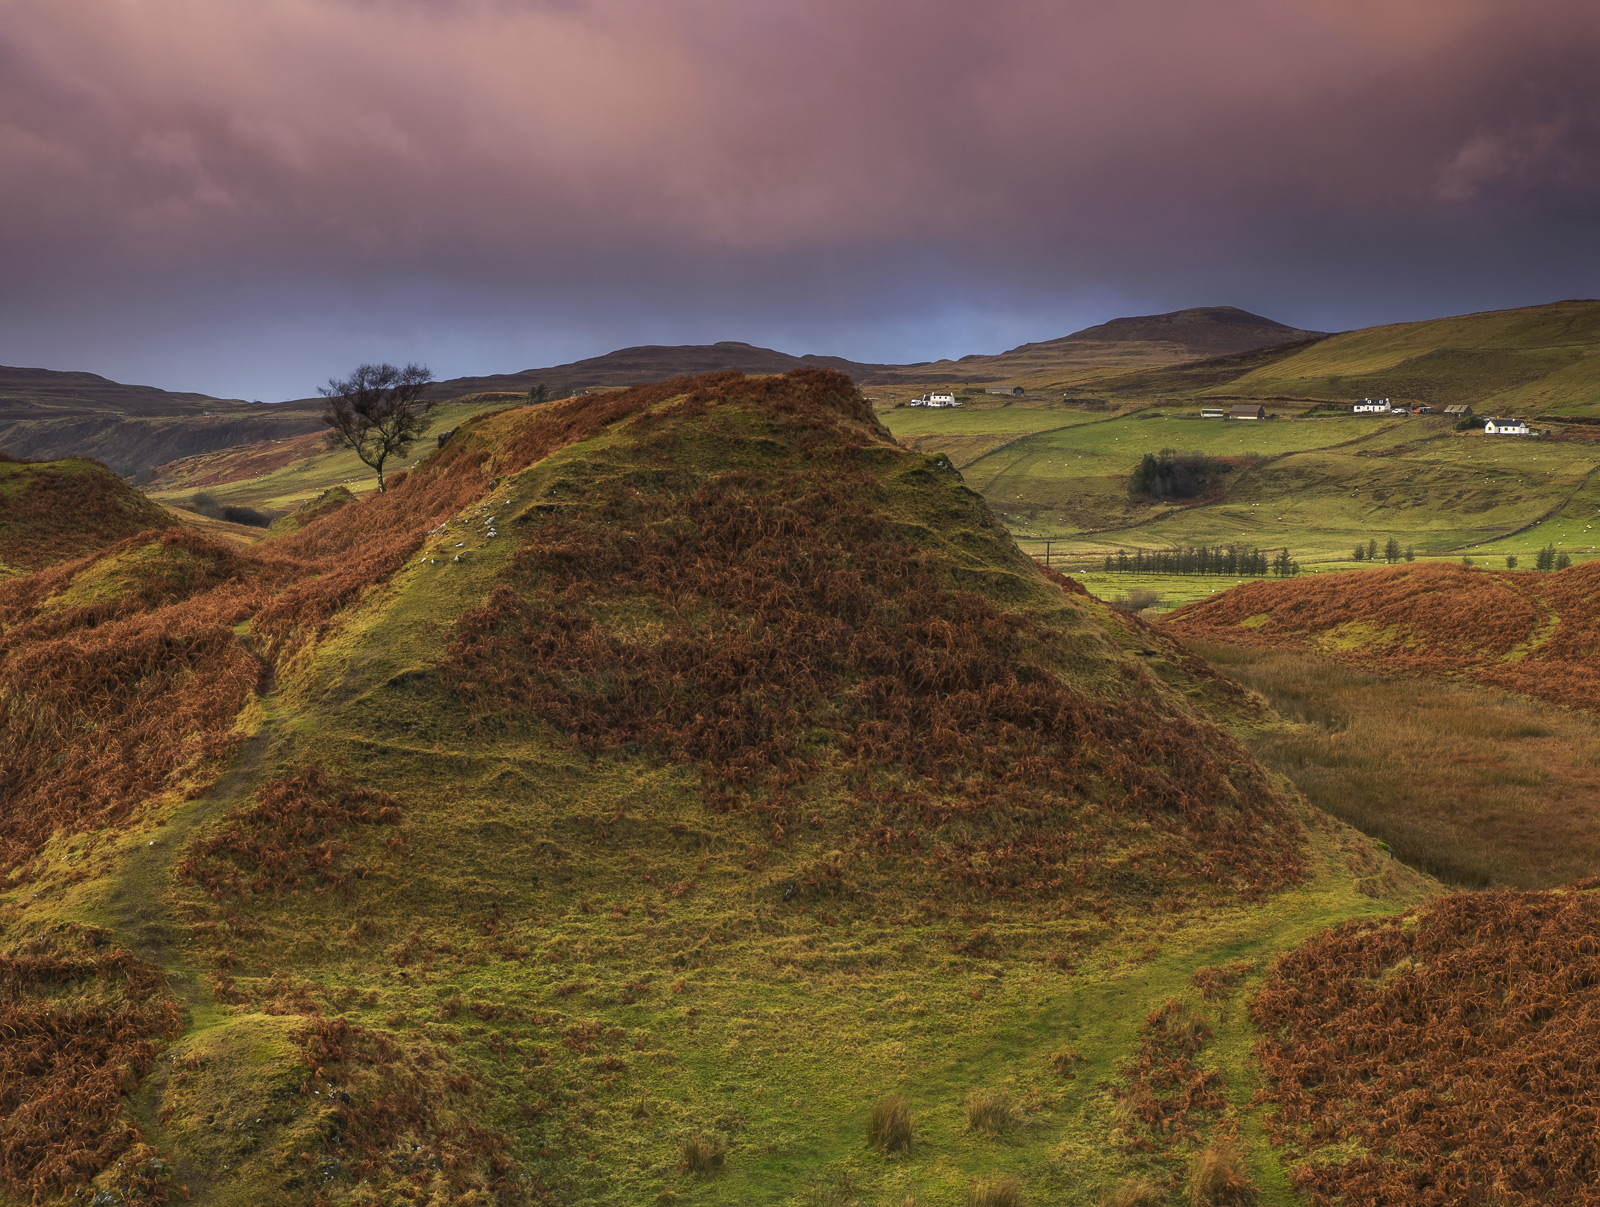 Gorgeous last minute light filtered its way beneath a lurid sky over the Fairy Glen transforming this bizarre landscape of conical...